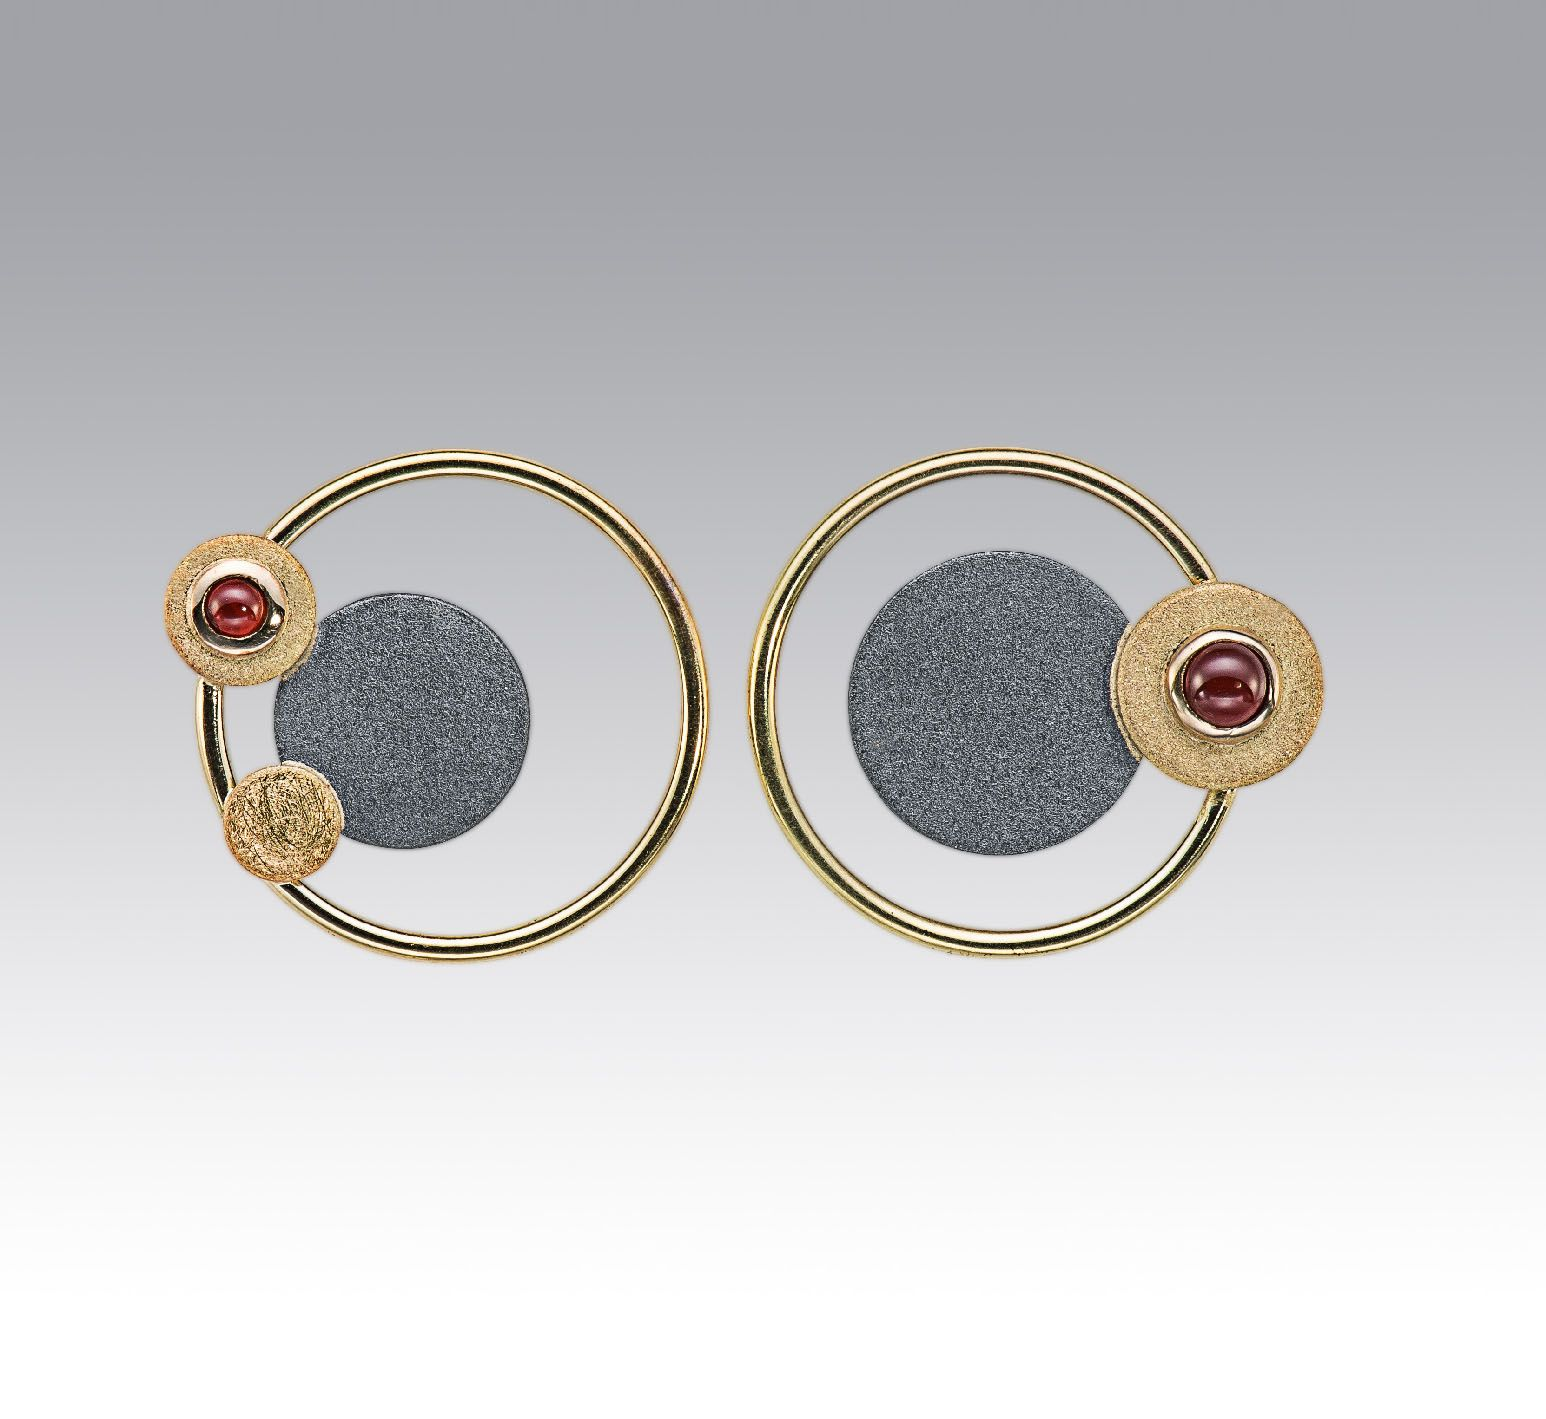 Janis kerman design oxidized sterling silver kt yellow gold